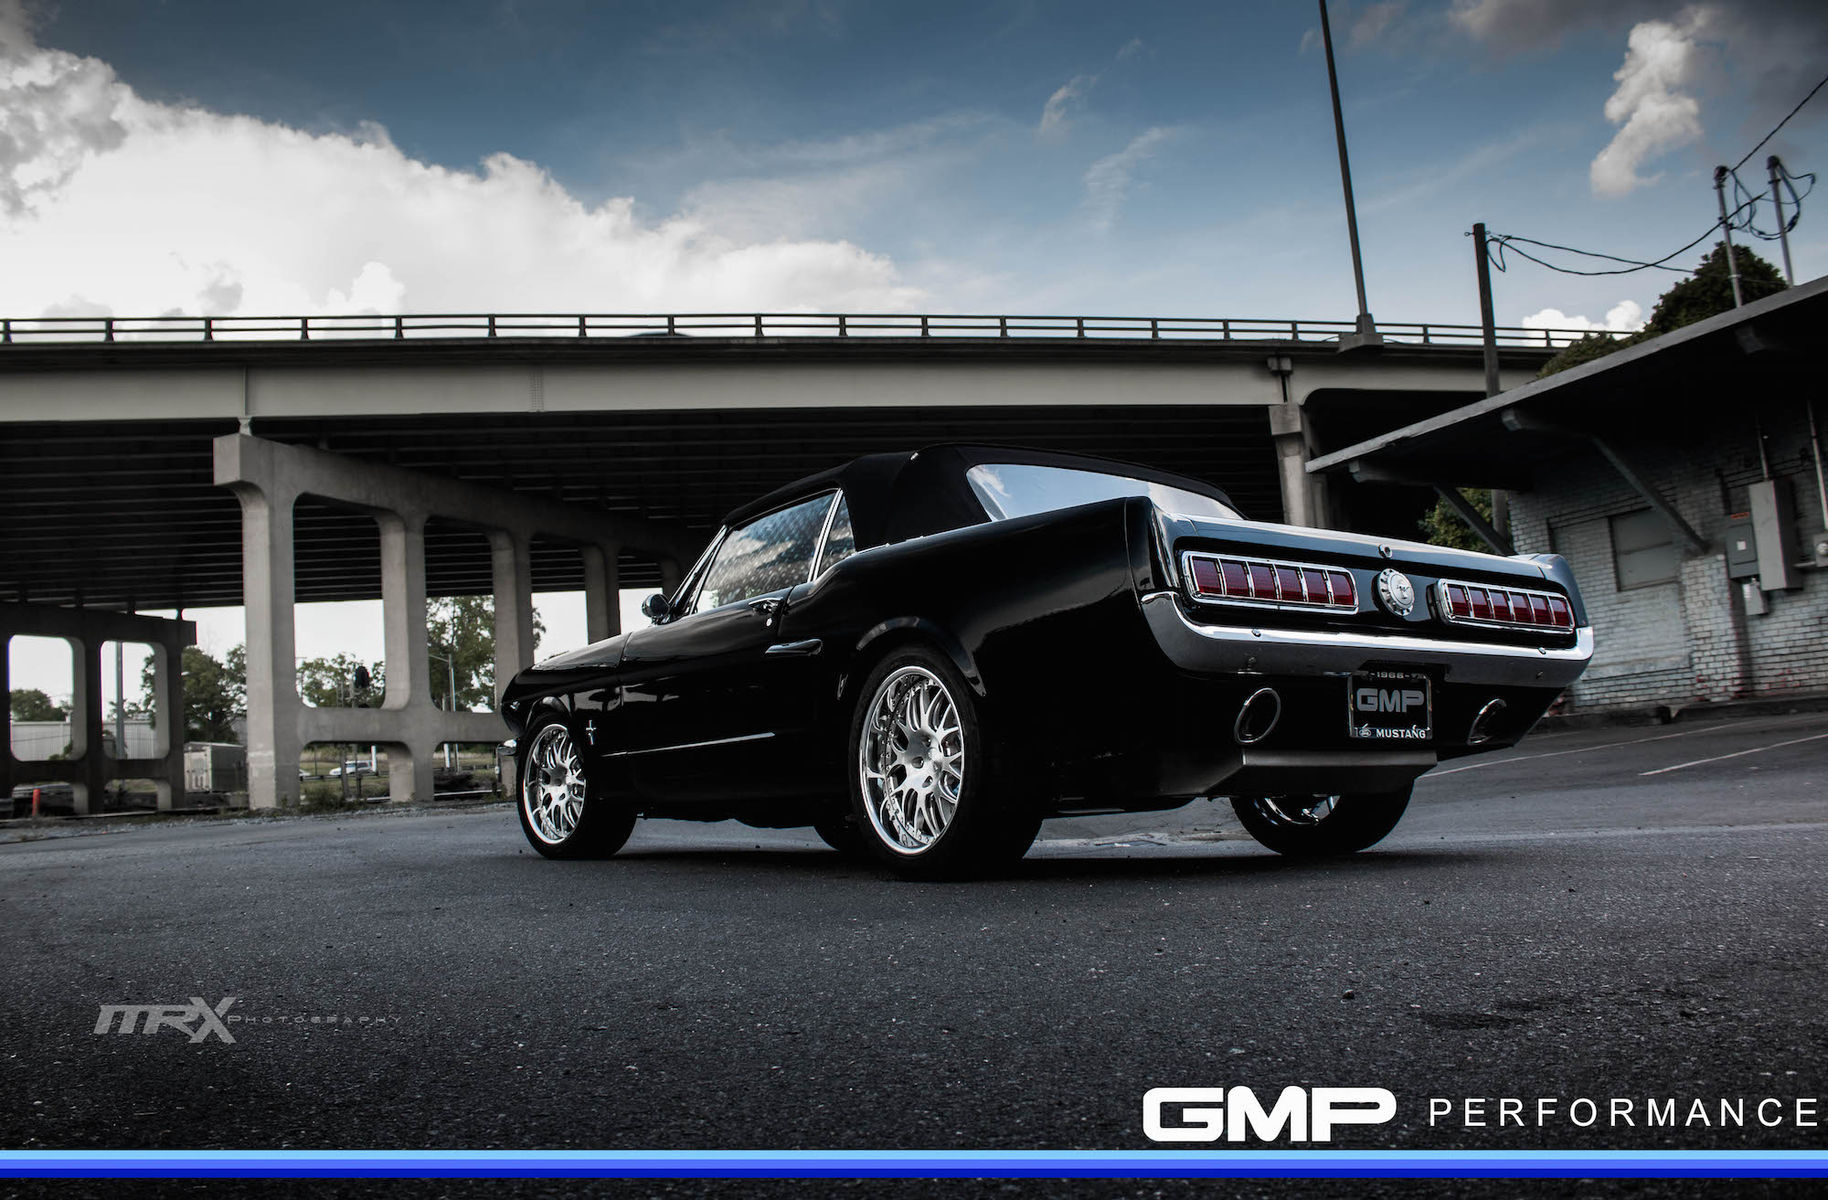 1966 Ford Mustang | Mustang on Forgeline GW3 Wheels